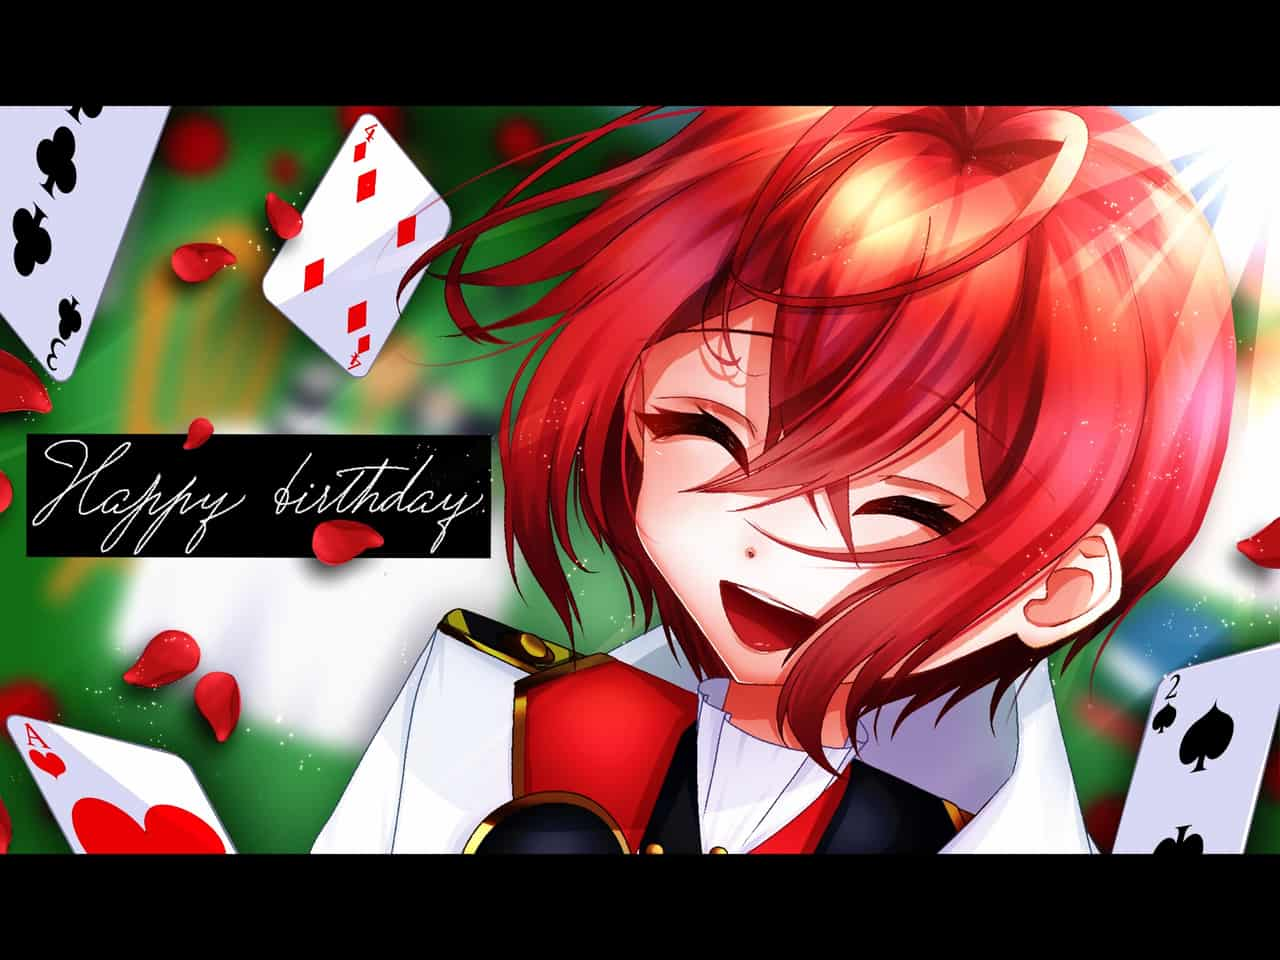 \Happy Birthday!!/ Illust of Lisa Twisted-Wonderland RiddleRosehearts